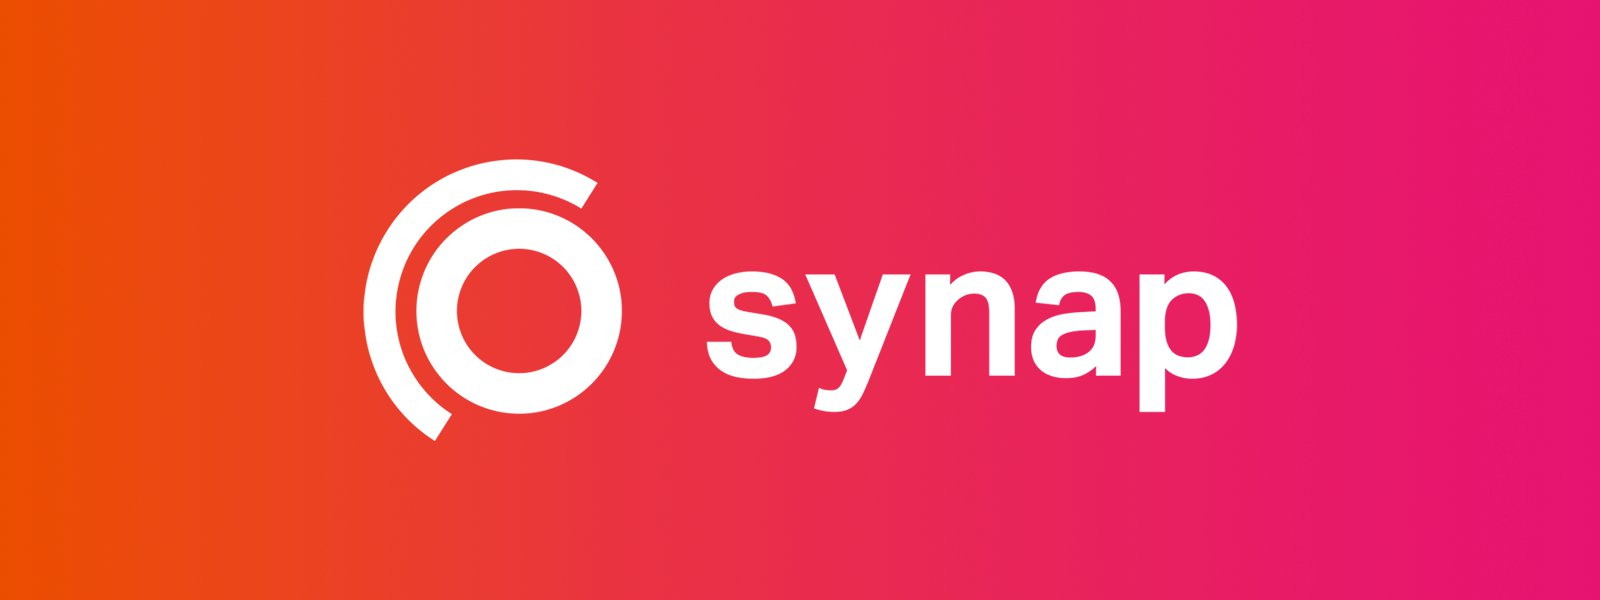 synap.png__1600x600_q85_crop_subsampling-2_upscale